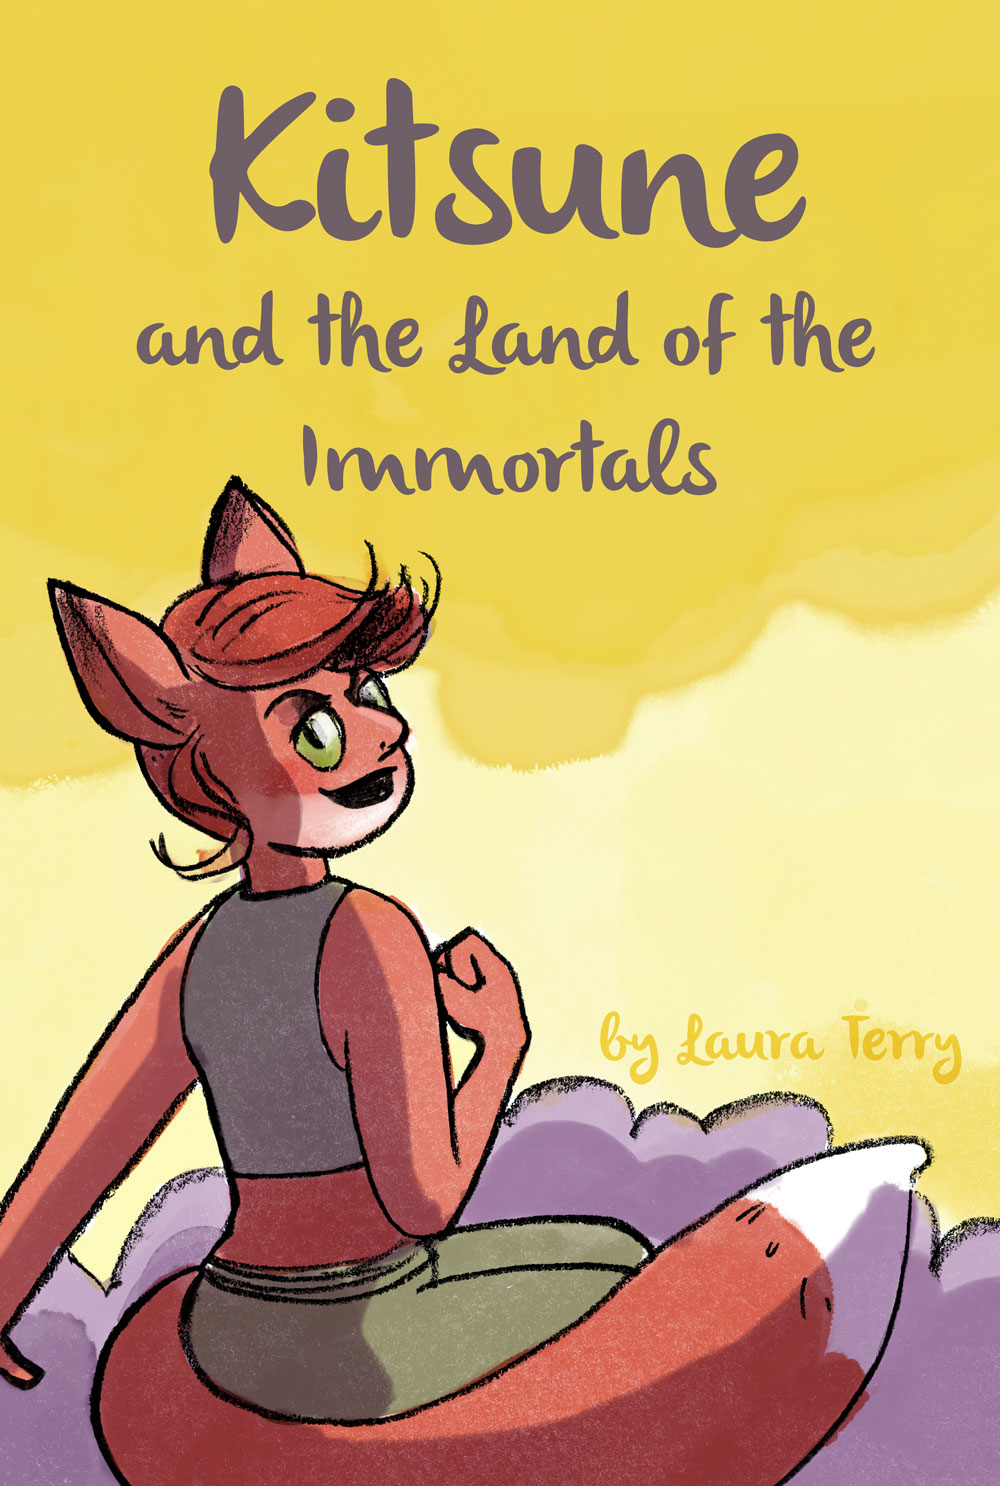 Kitsune and the land of the Immortals by Laura Terry